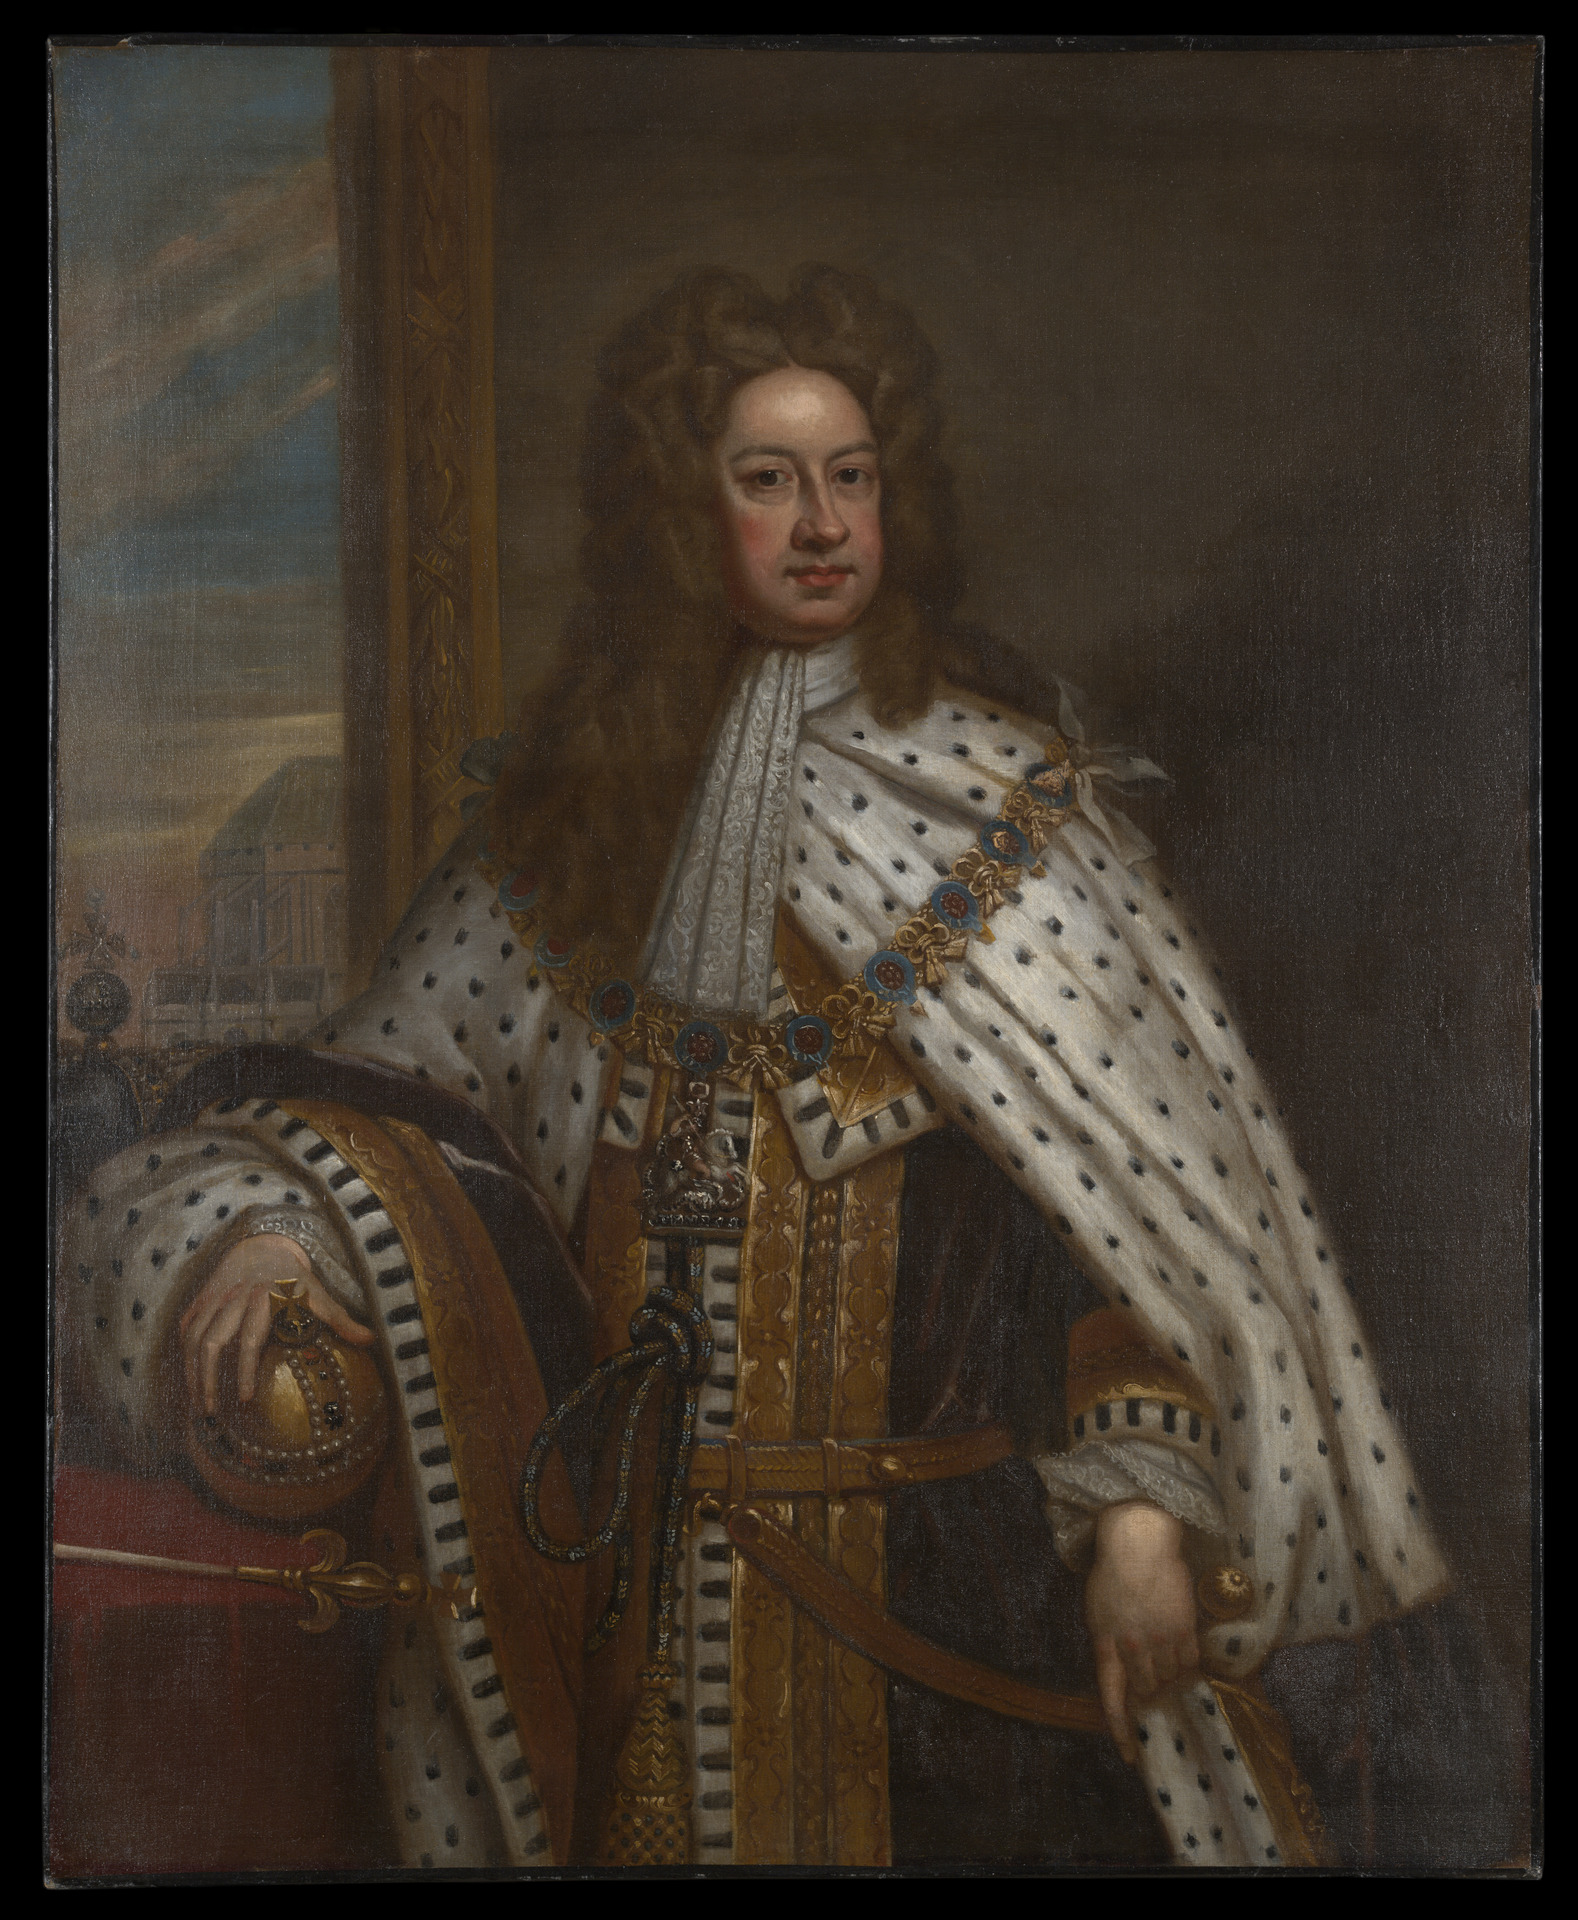 Sir Godfrey Kneller, King George I of Great Britain and Ireland, 1714, oil on canvas, Yale University Art Gallery, Gift of Governor Elihu Yale, 1718.1